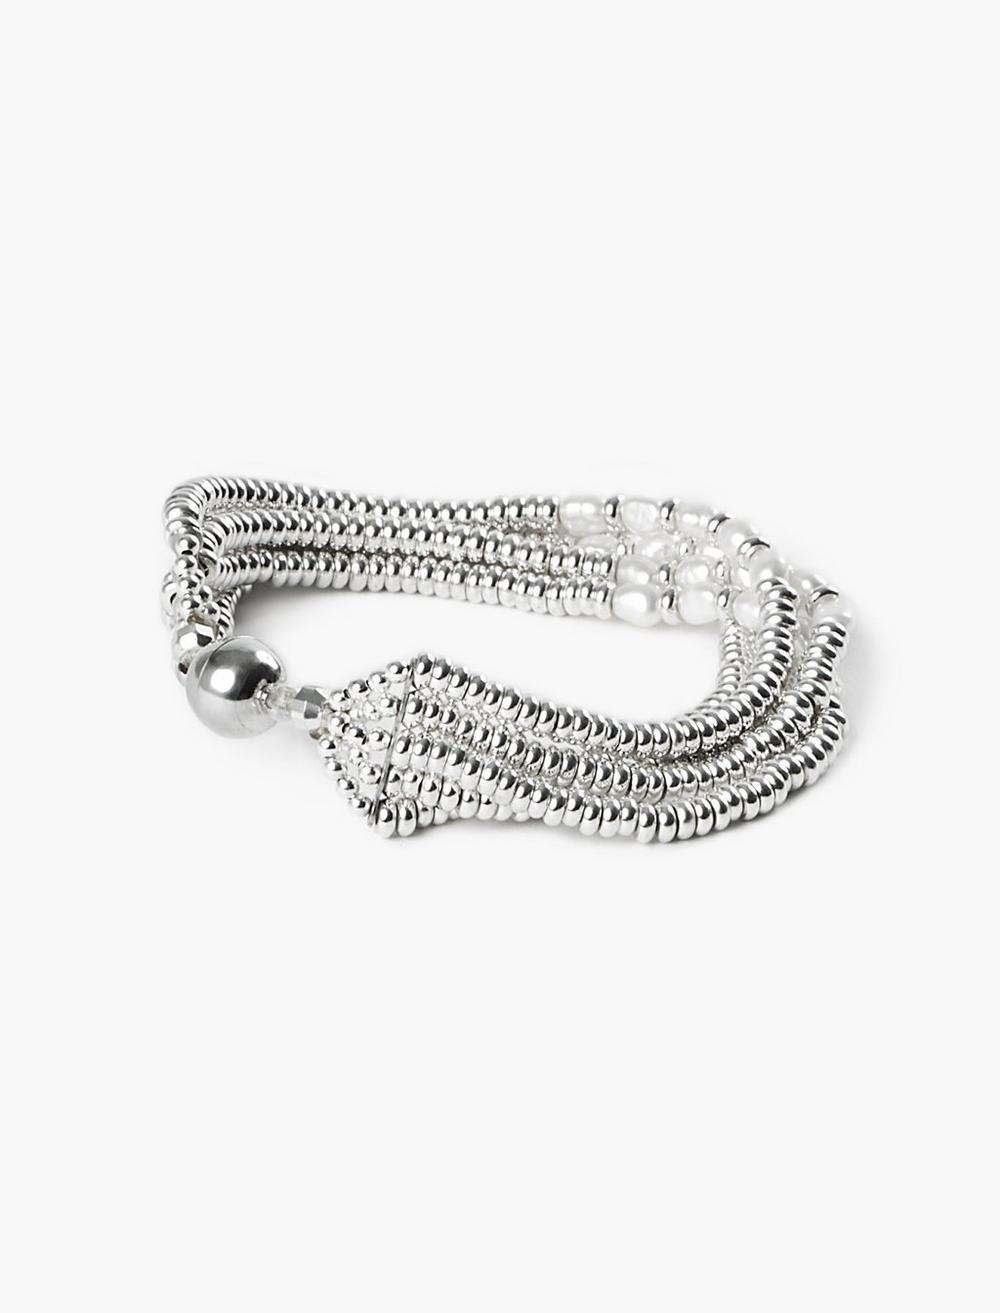 PEARL AND SILVER BEADED BRACELET, image 2